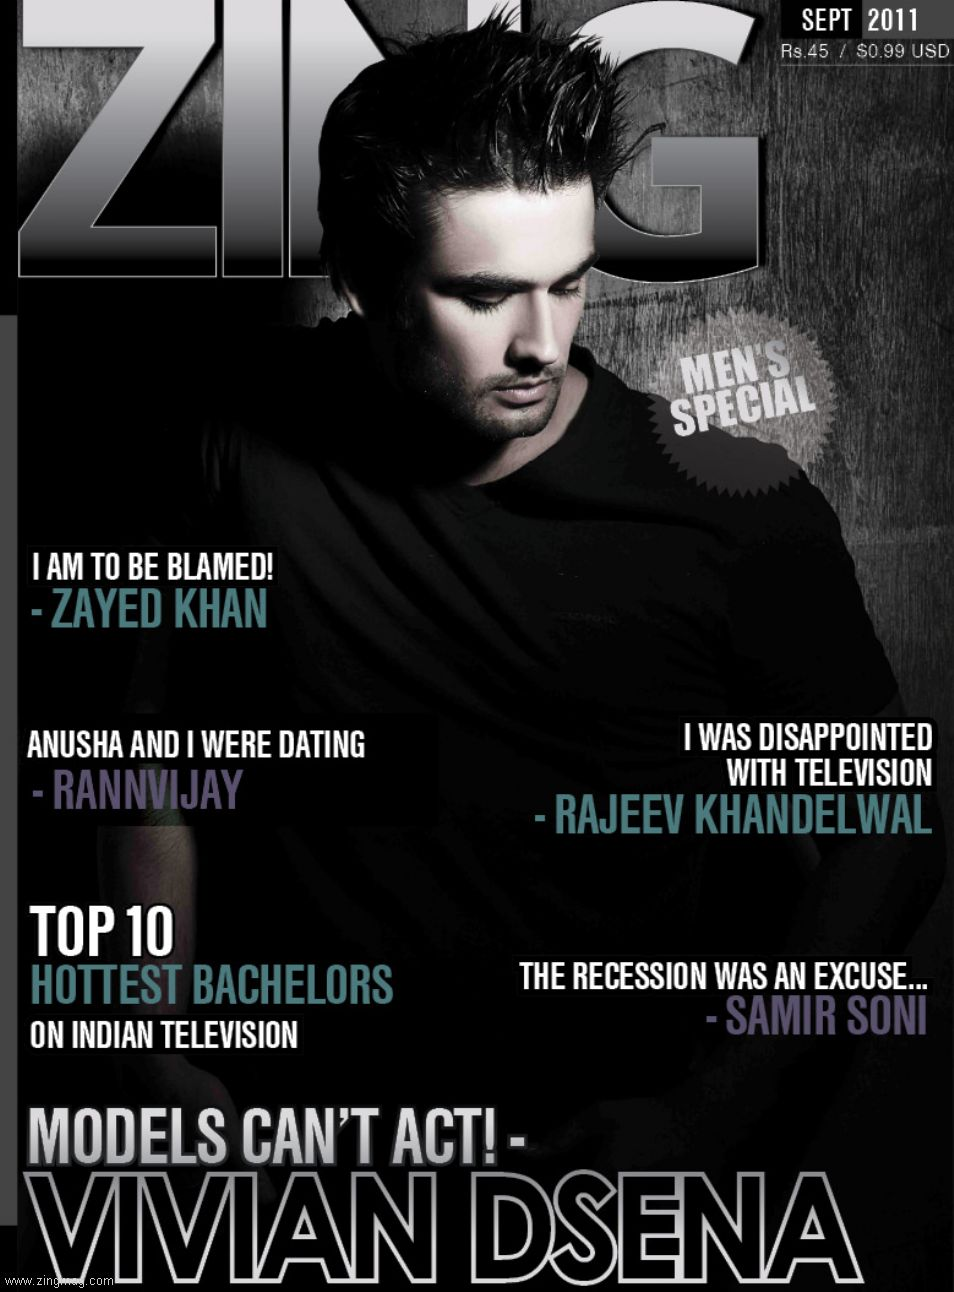 Zing Issue September 2011 Coverpage - Vivian Dsena